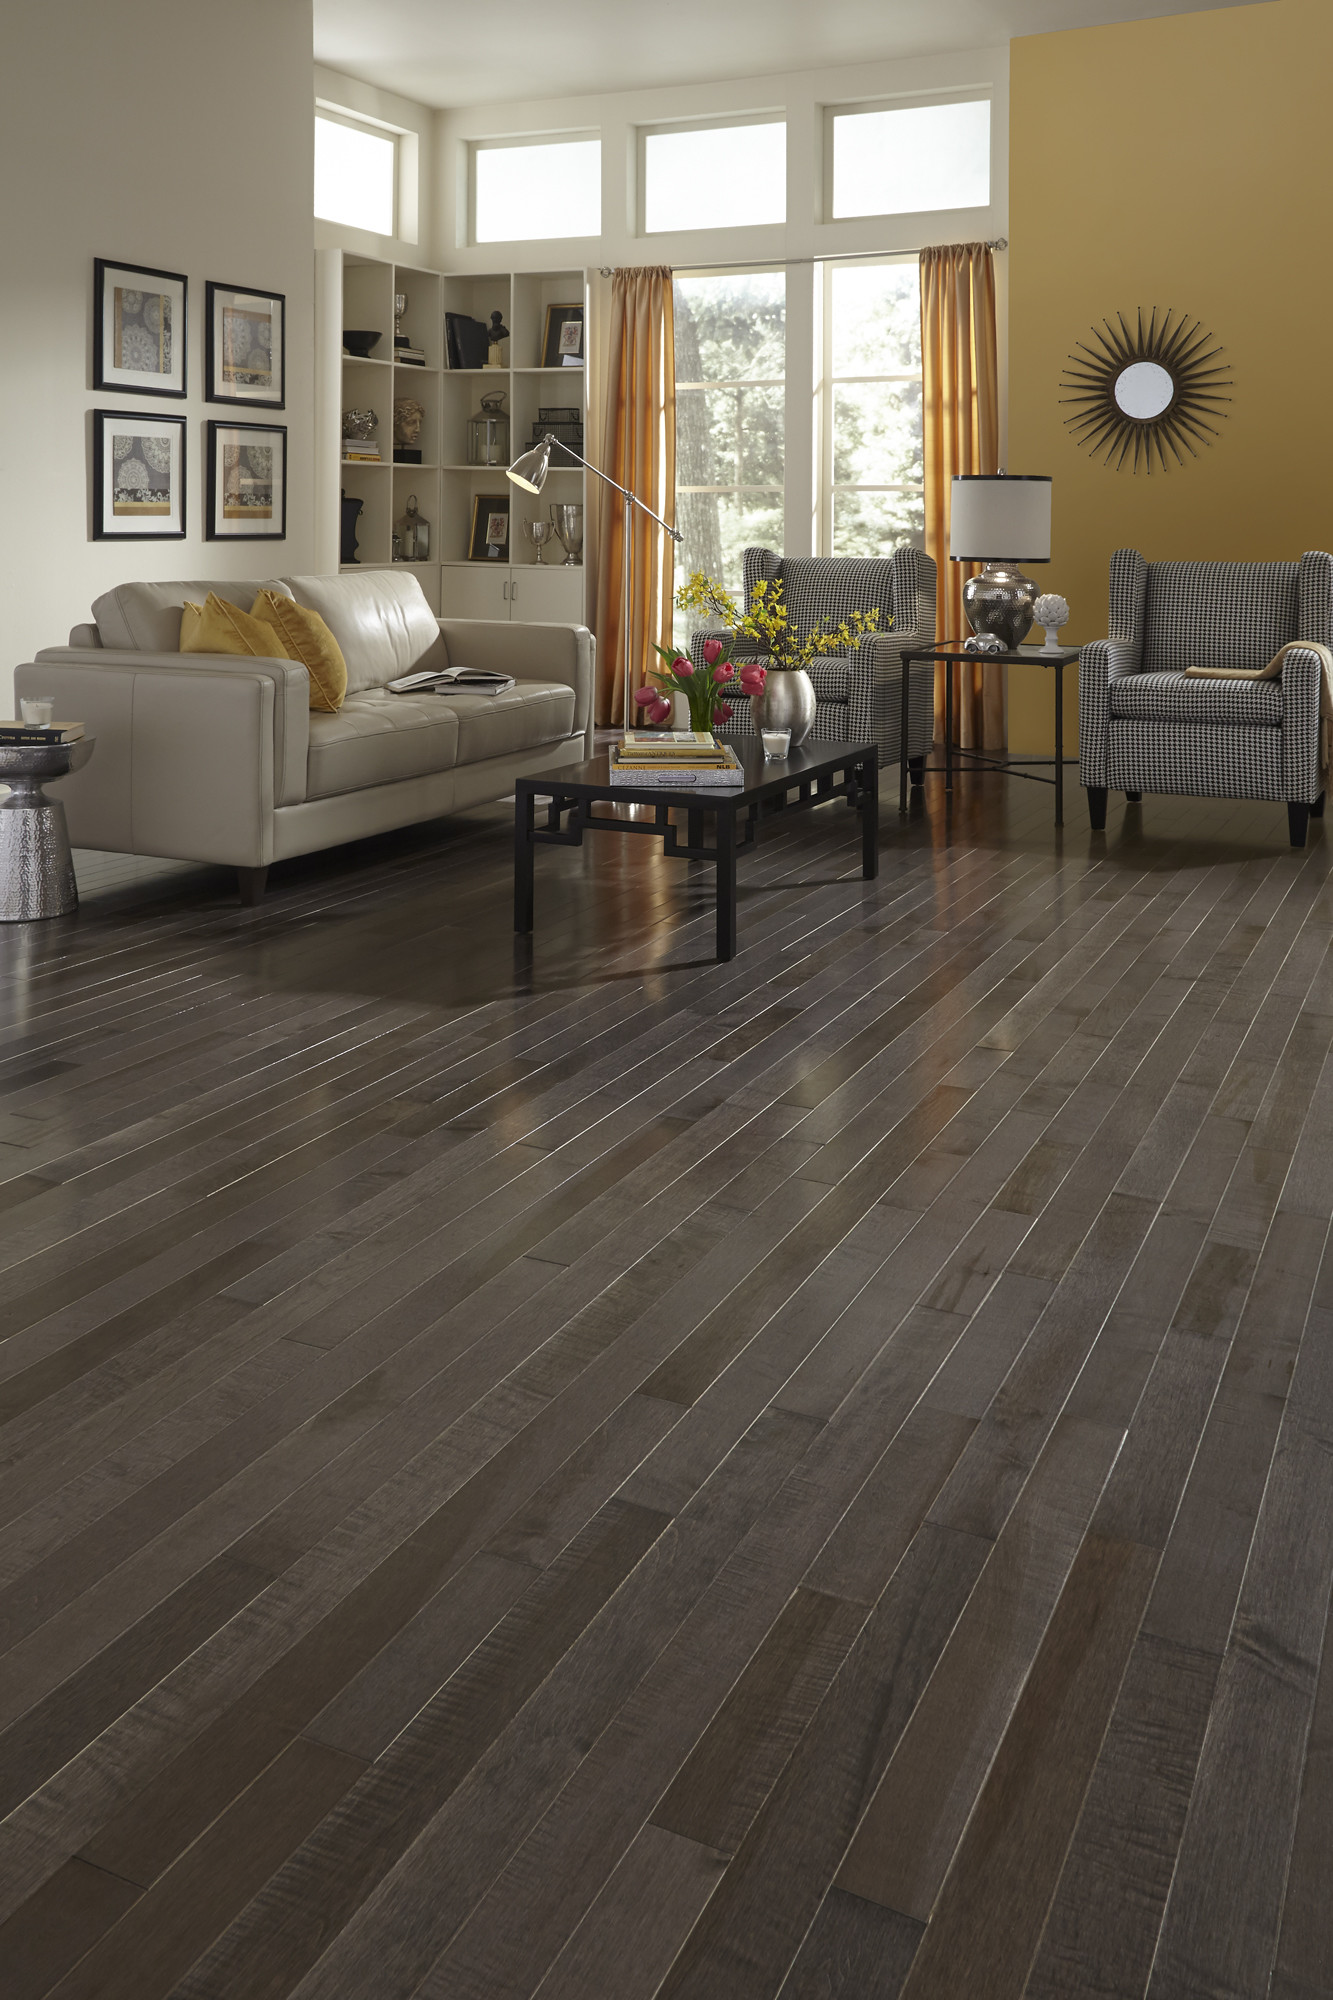 how to install hardwood floors on second floor of how to lay a floating floor espressivo natural chestnut effect inside how to lay a floating floor august s top floors social